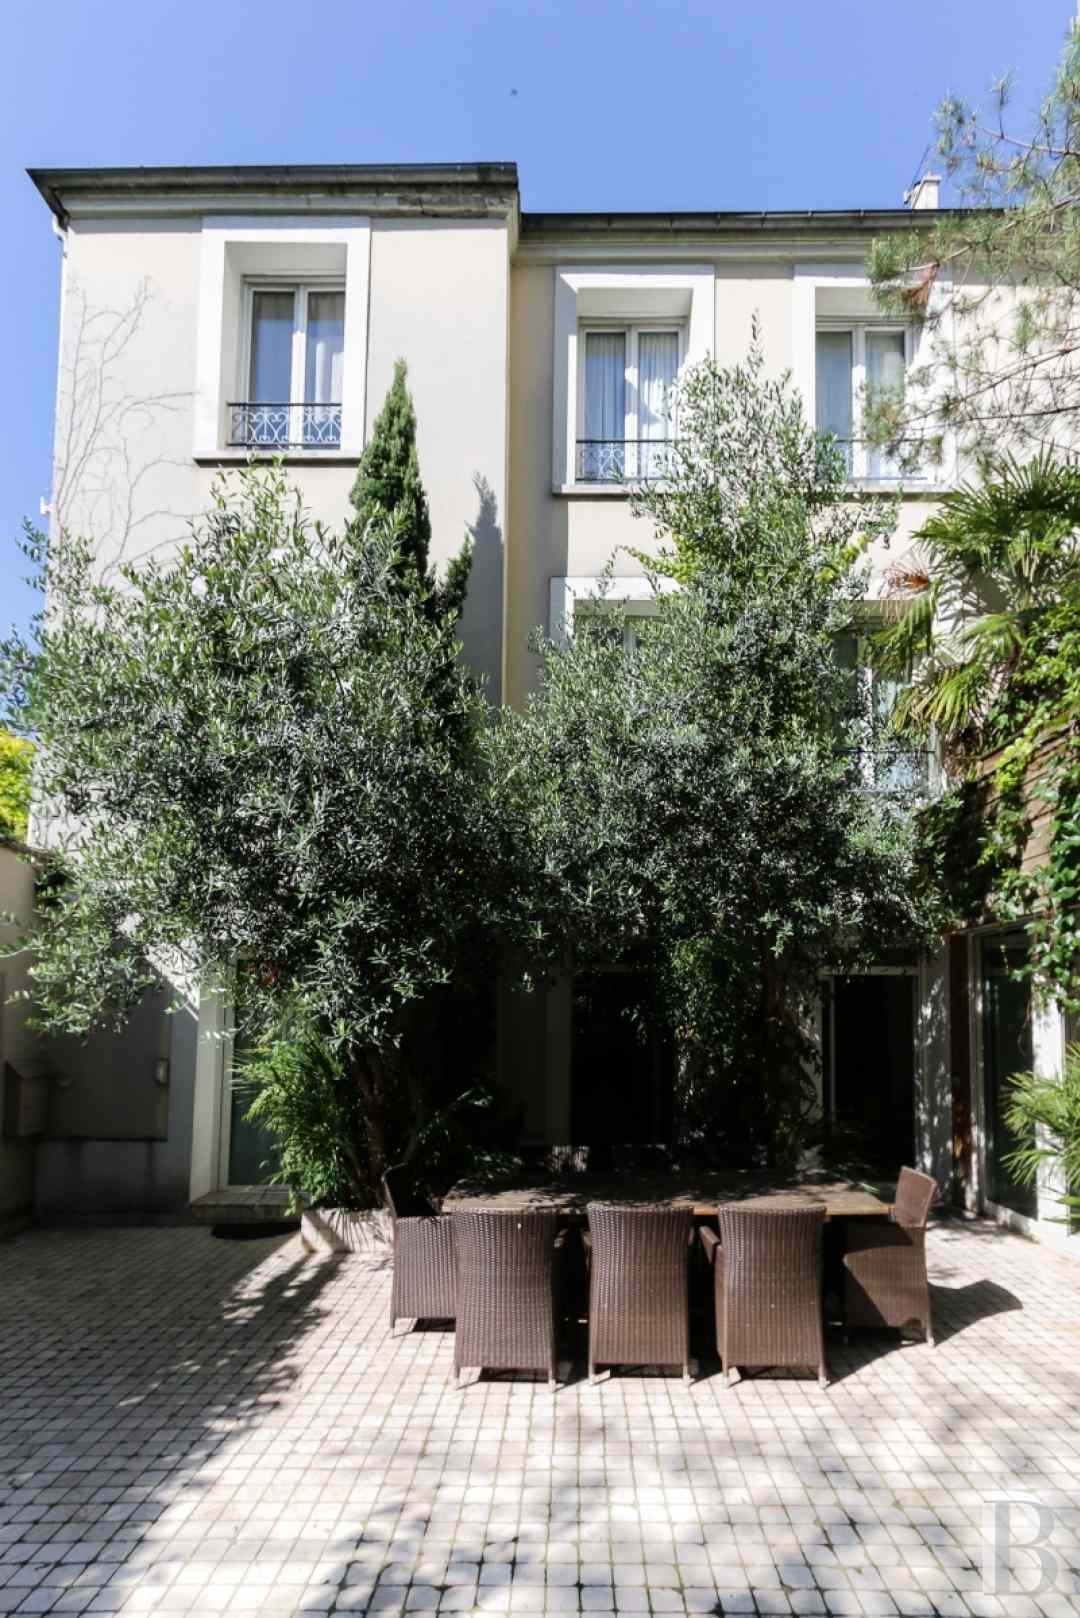 houses for sale paris 18th arrondissement - 8 zoom